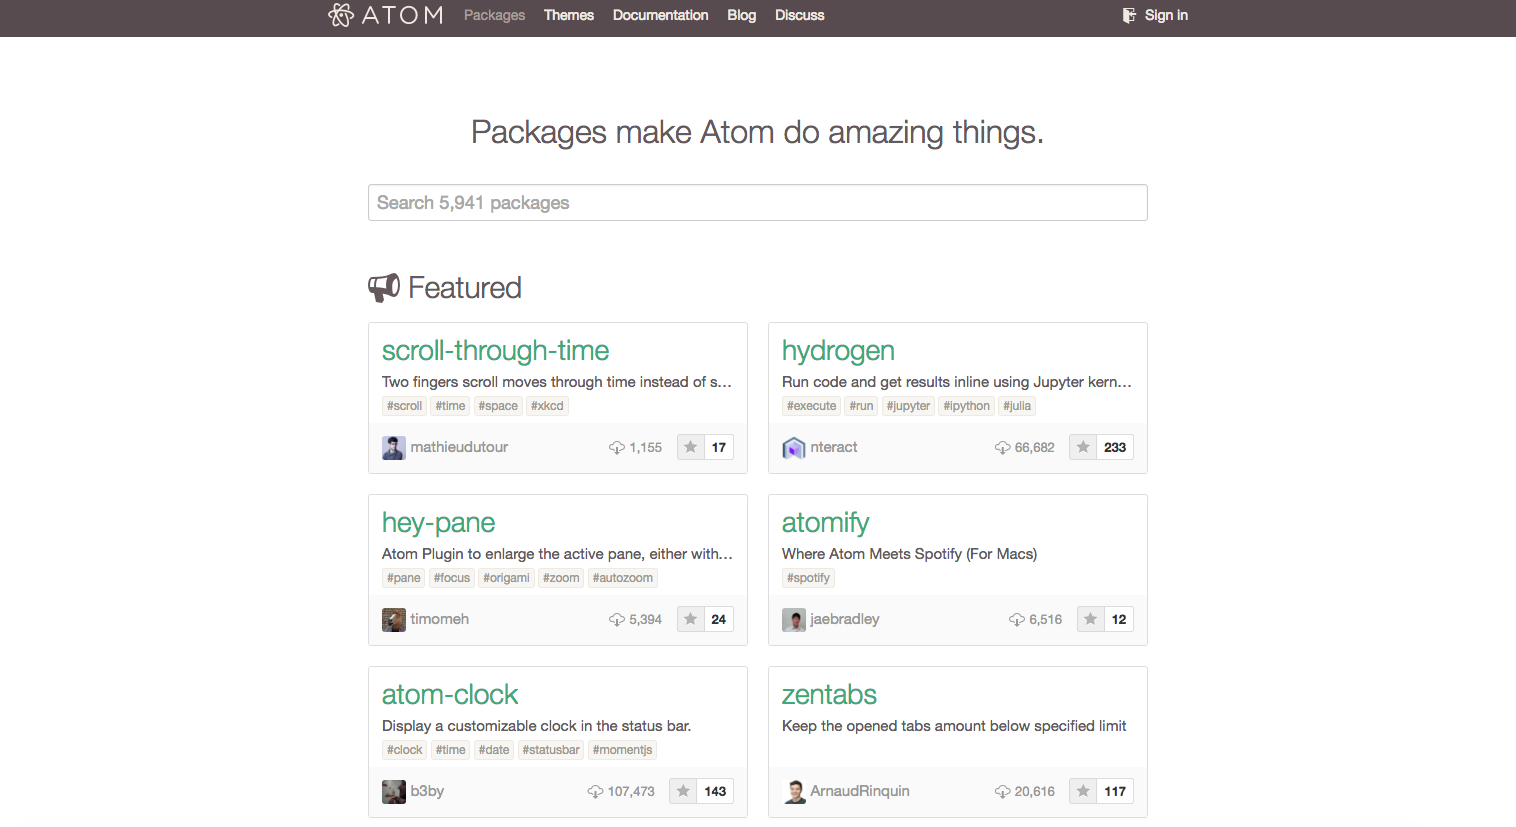 packages in Atom